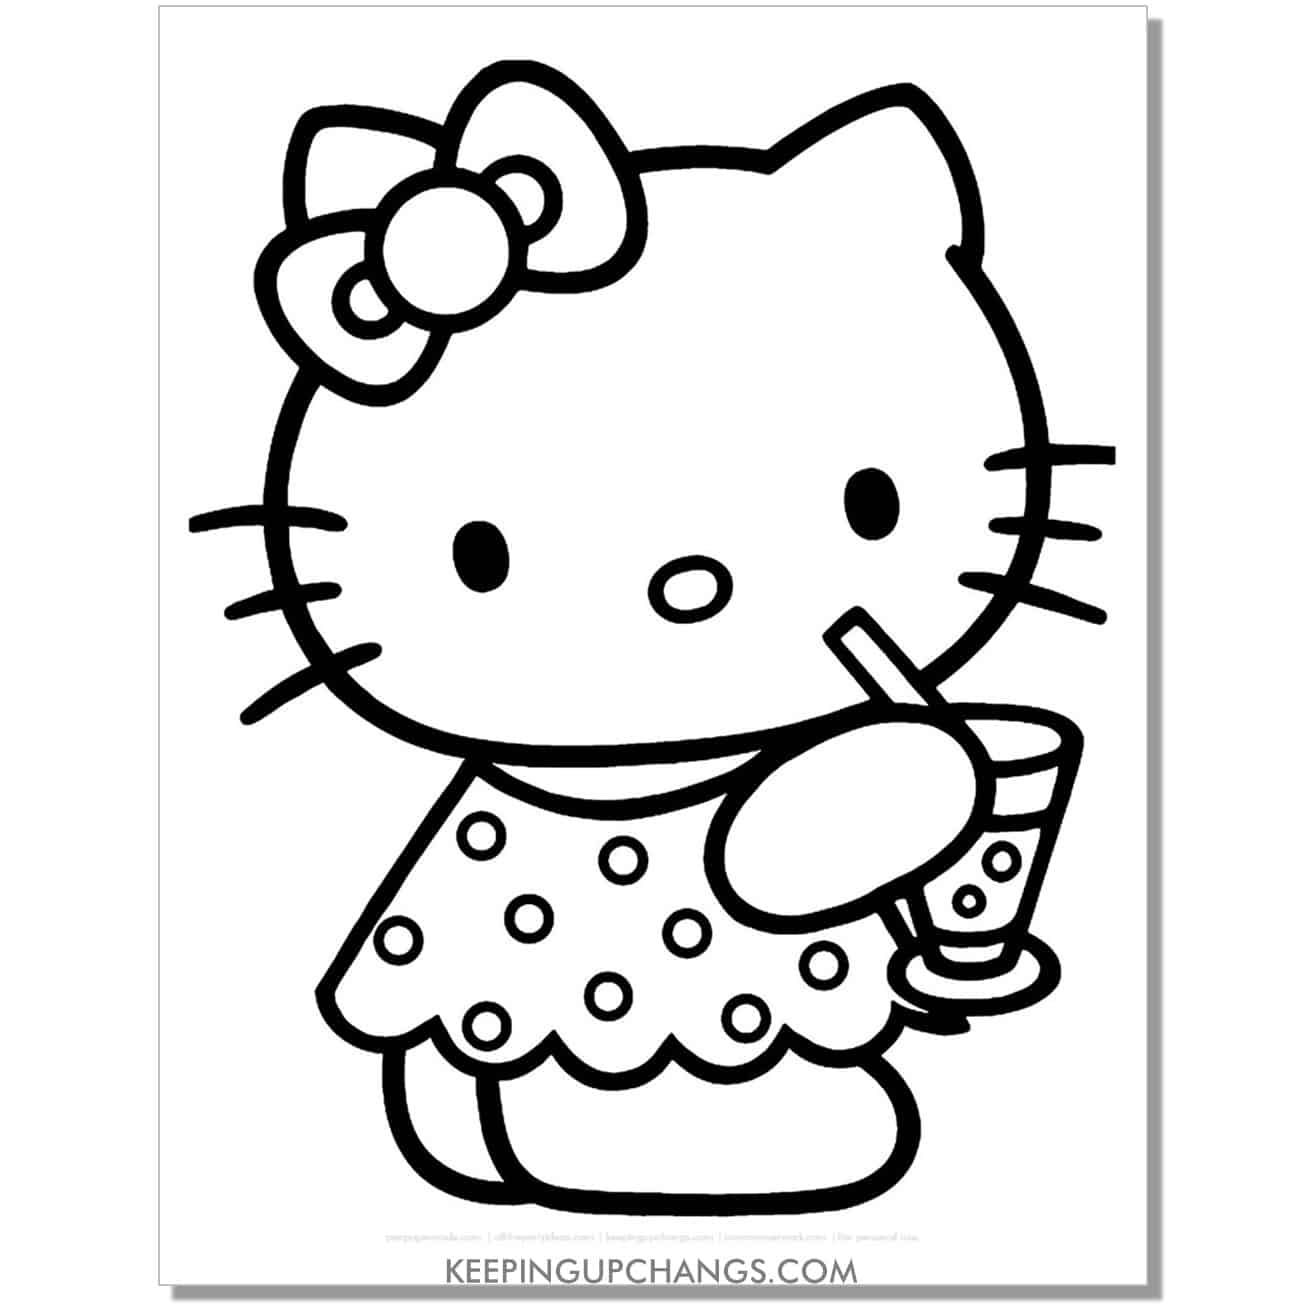 summer pool drink hello kitty coloring page.